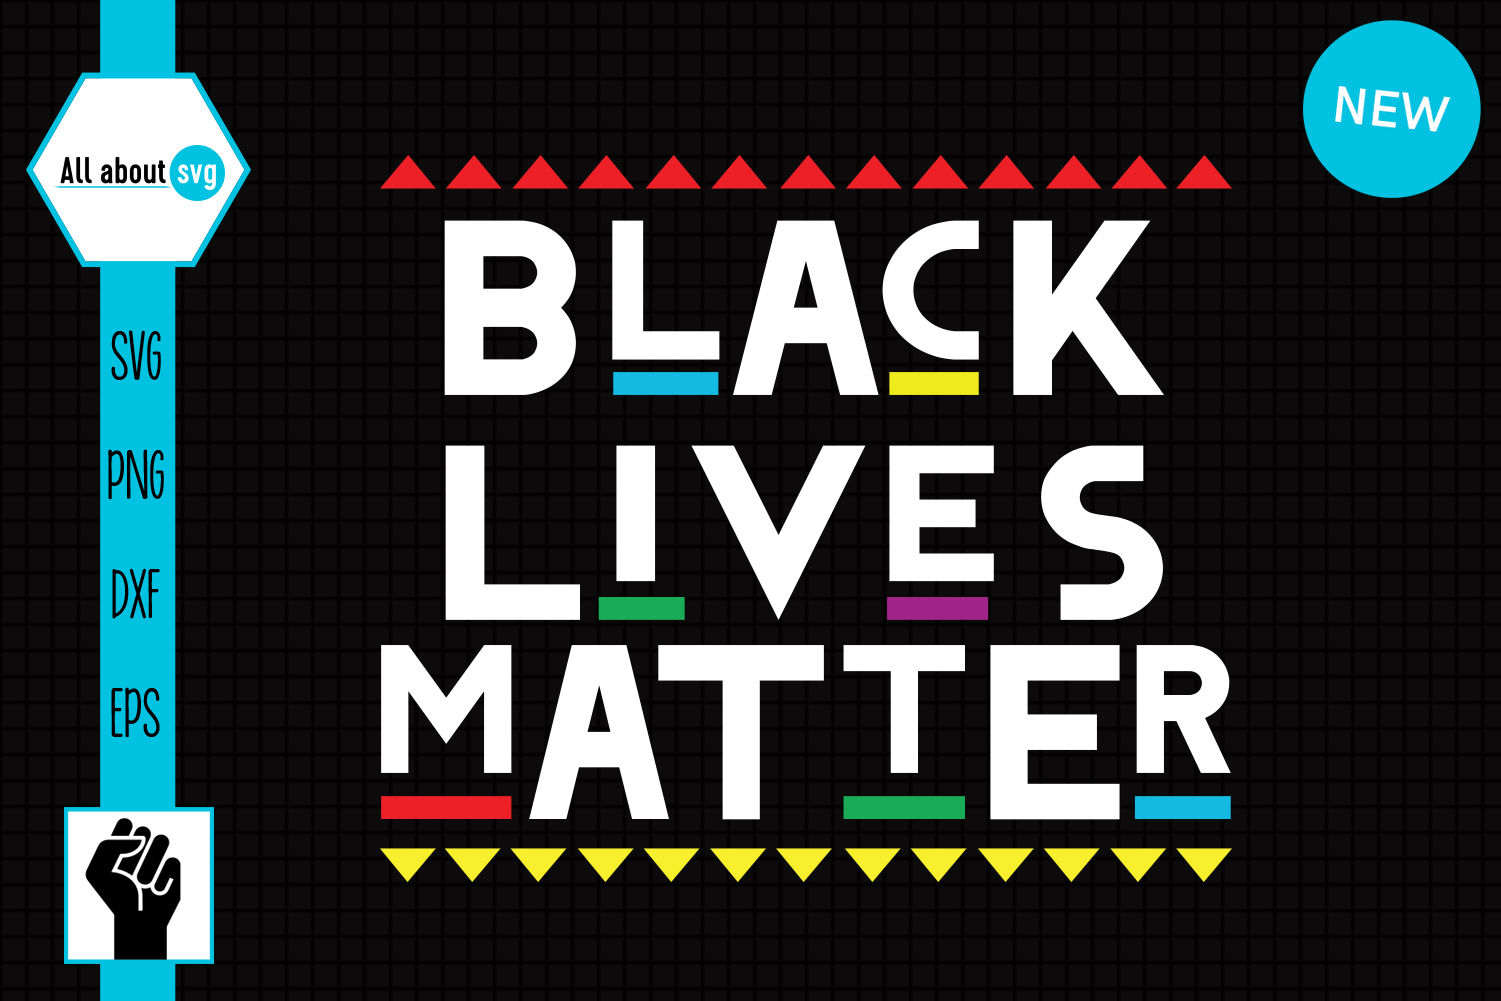 Black Lives Matter Graphic By All About Svg Creative Fabrica